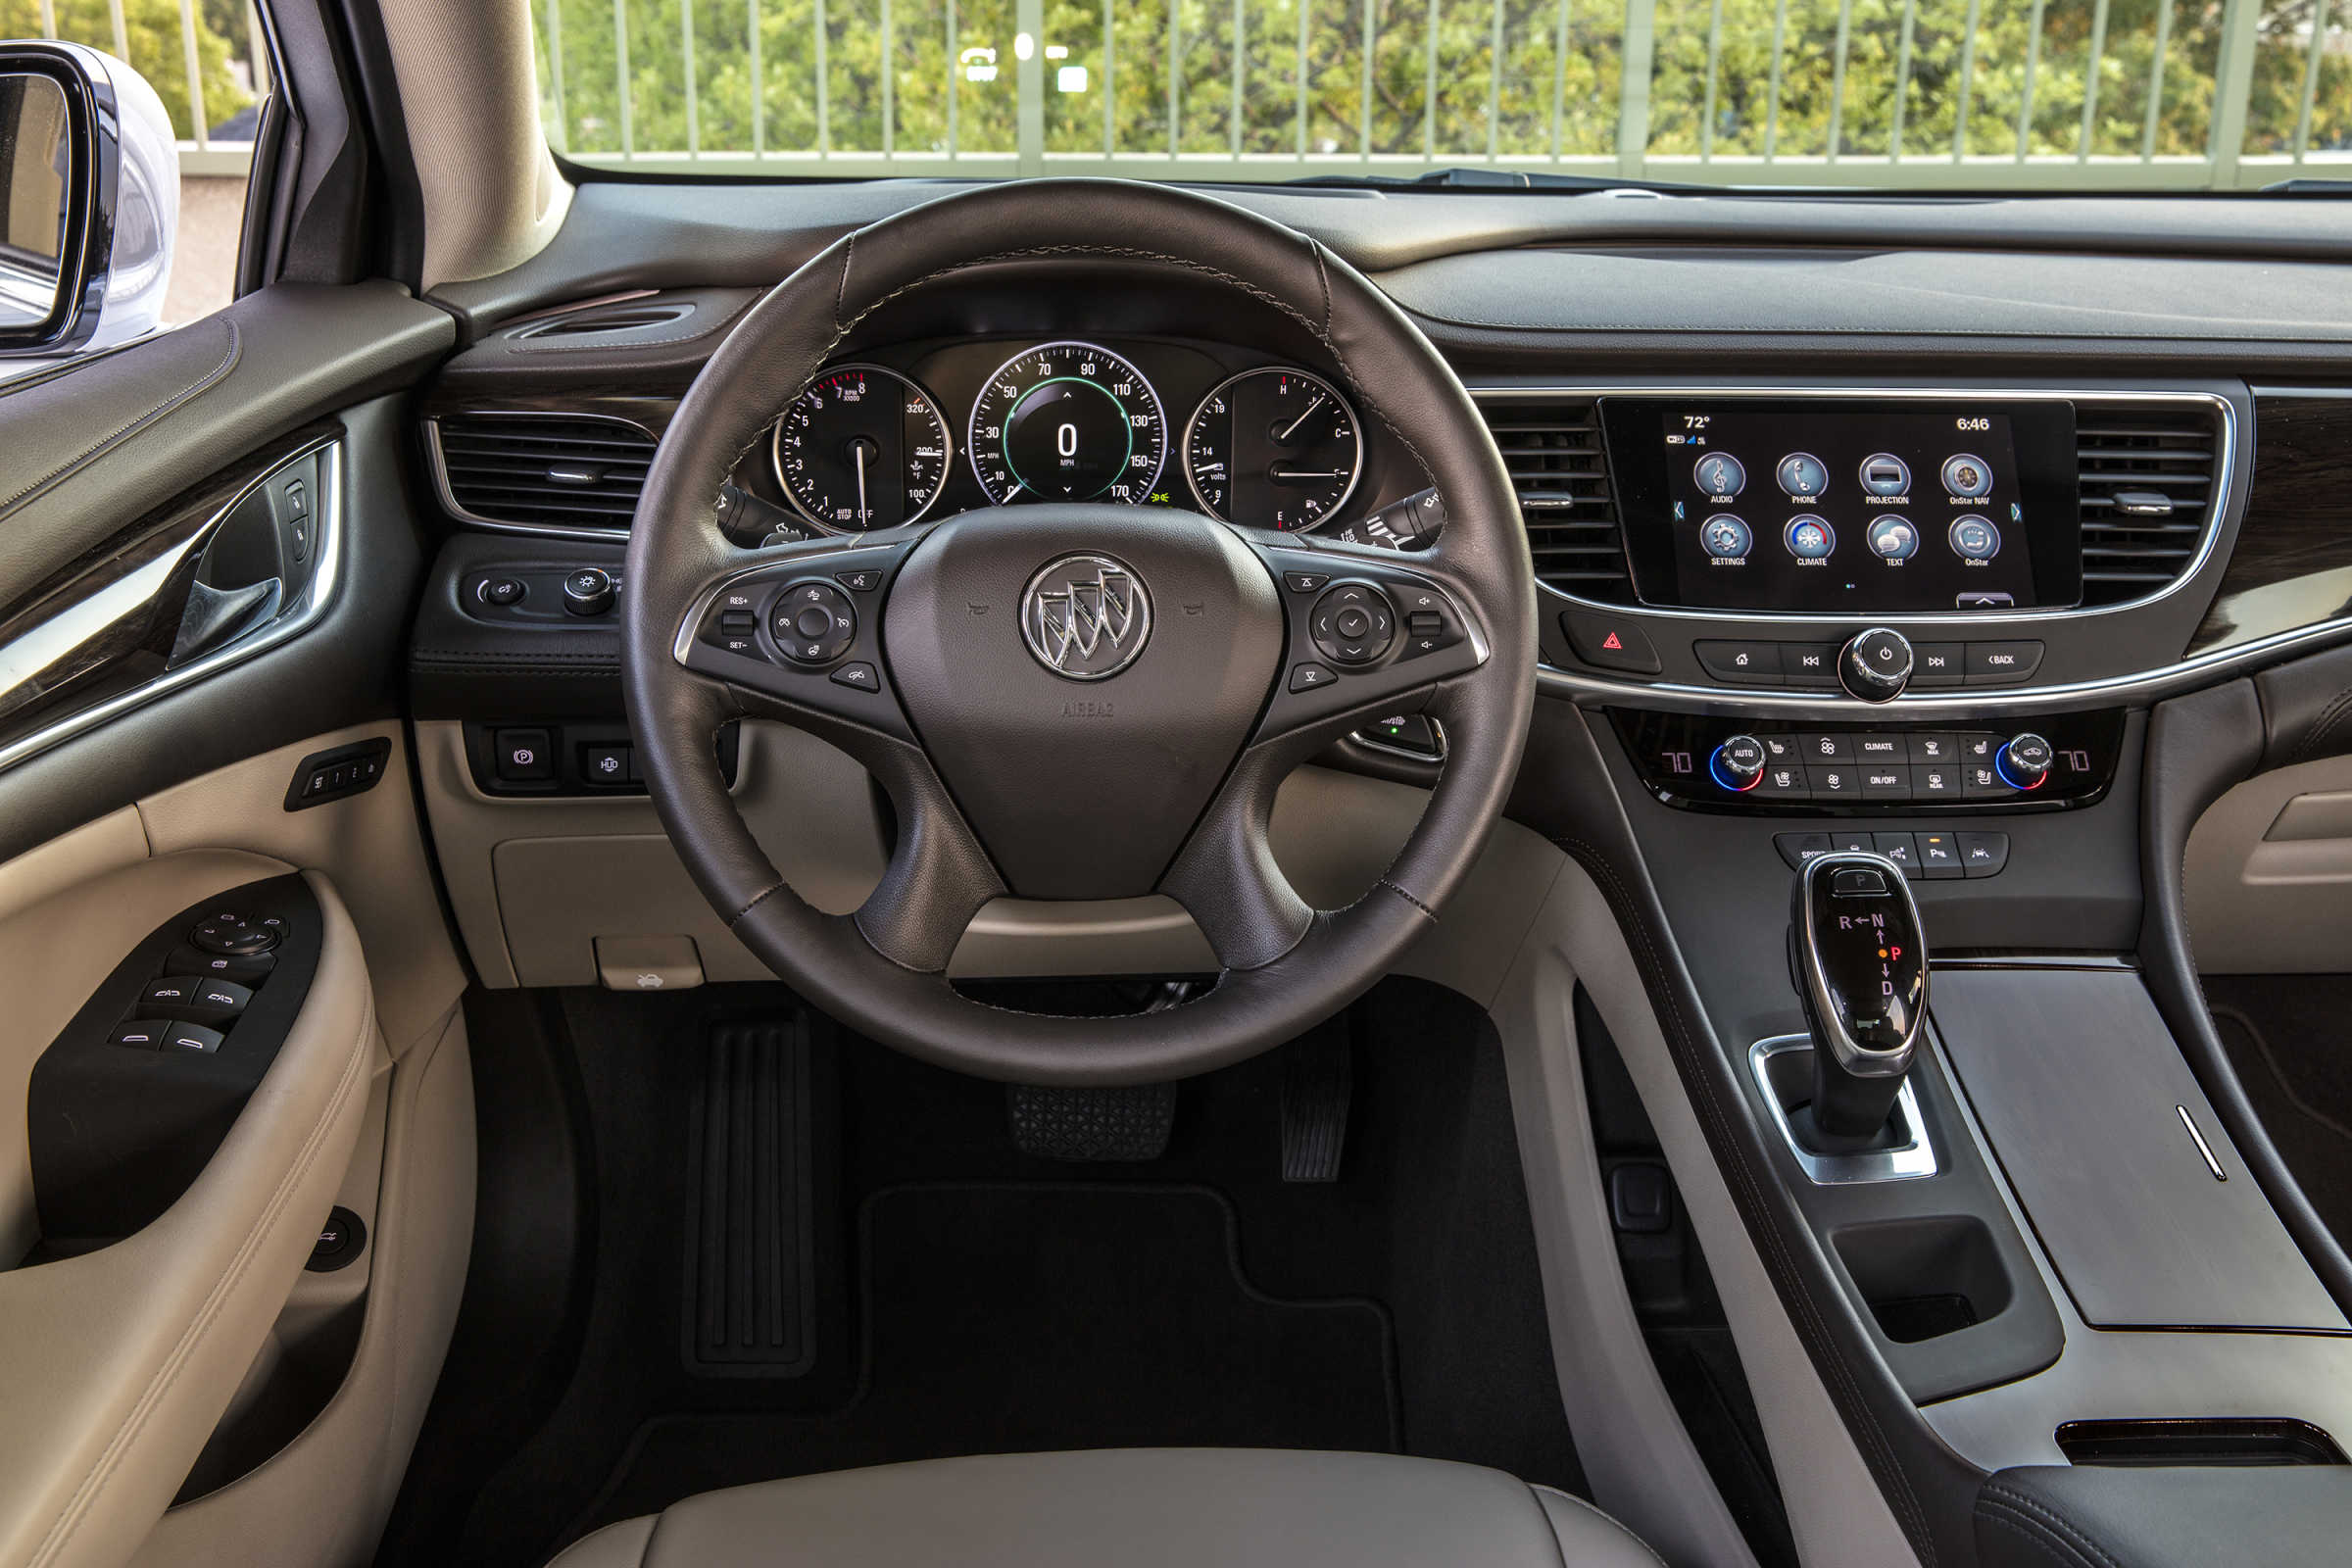 Inside the 2017 Buick LaCrosse, the view is fairly standard General Motors features.